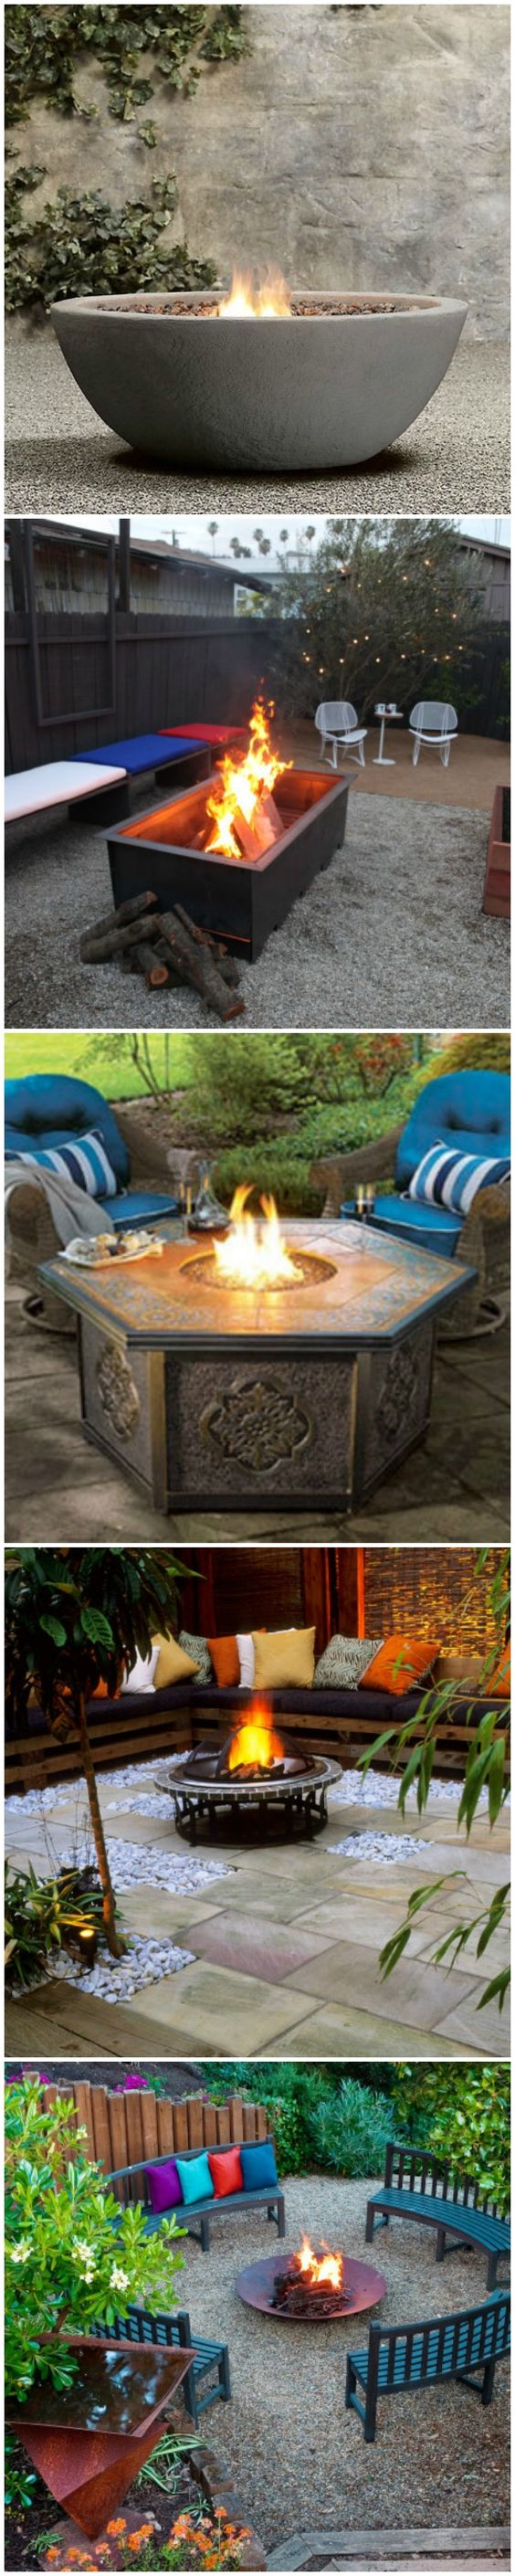 27 Fire Pit Ideas To Keep You Warm Outside This Winter